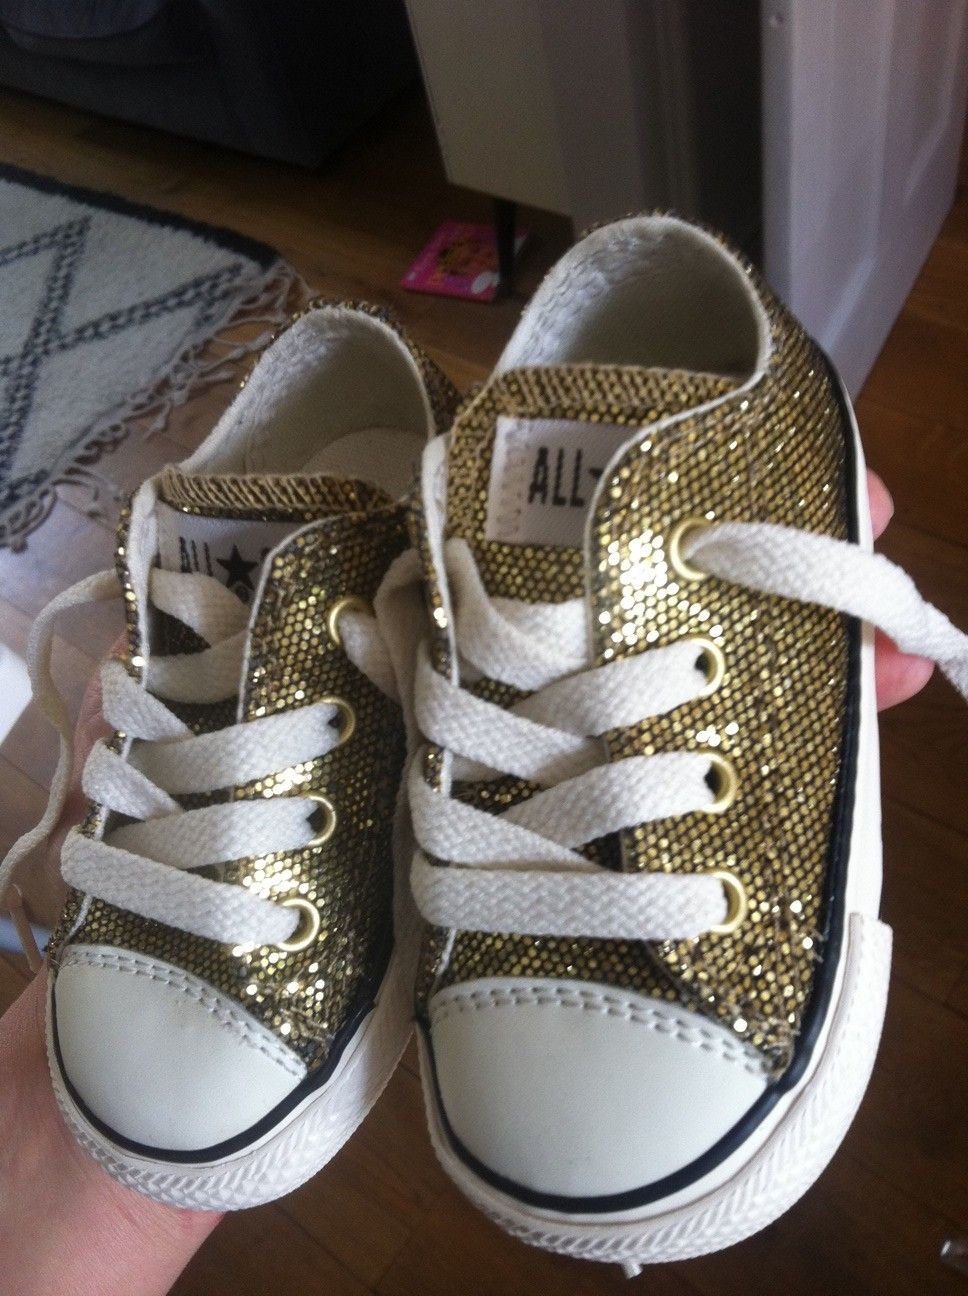 for my Katalina flower girl: Gold Glitter Converse!